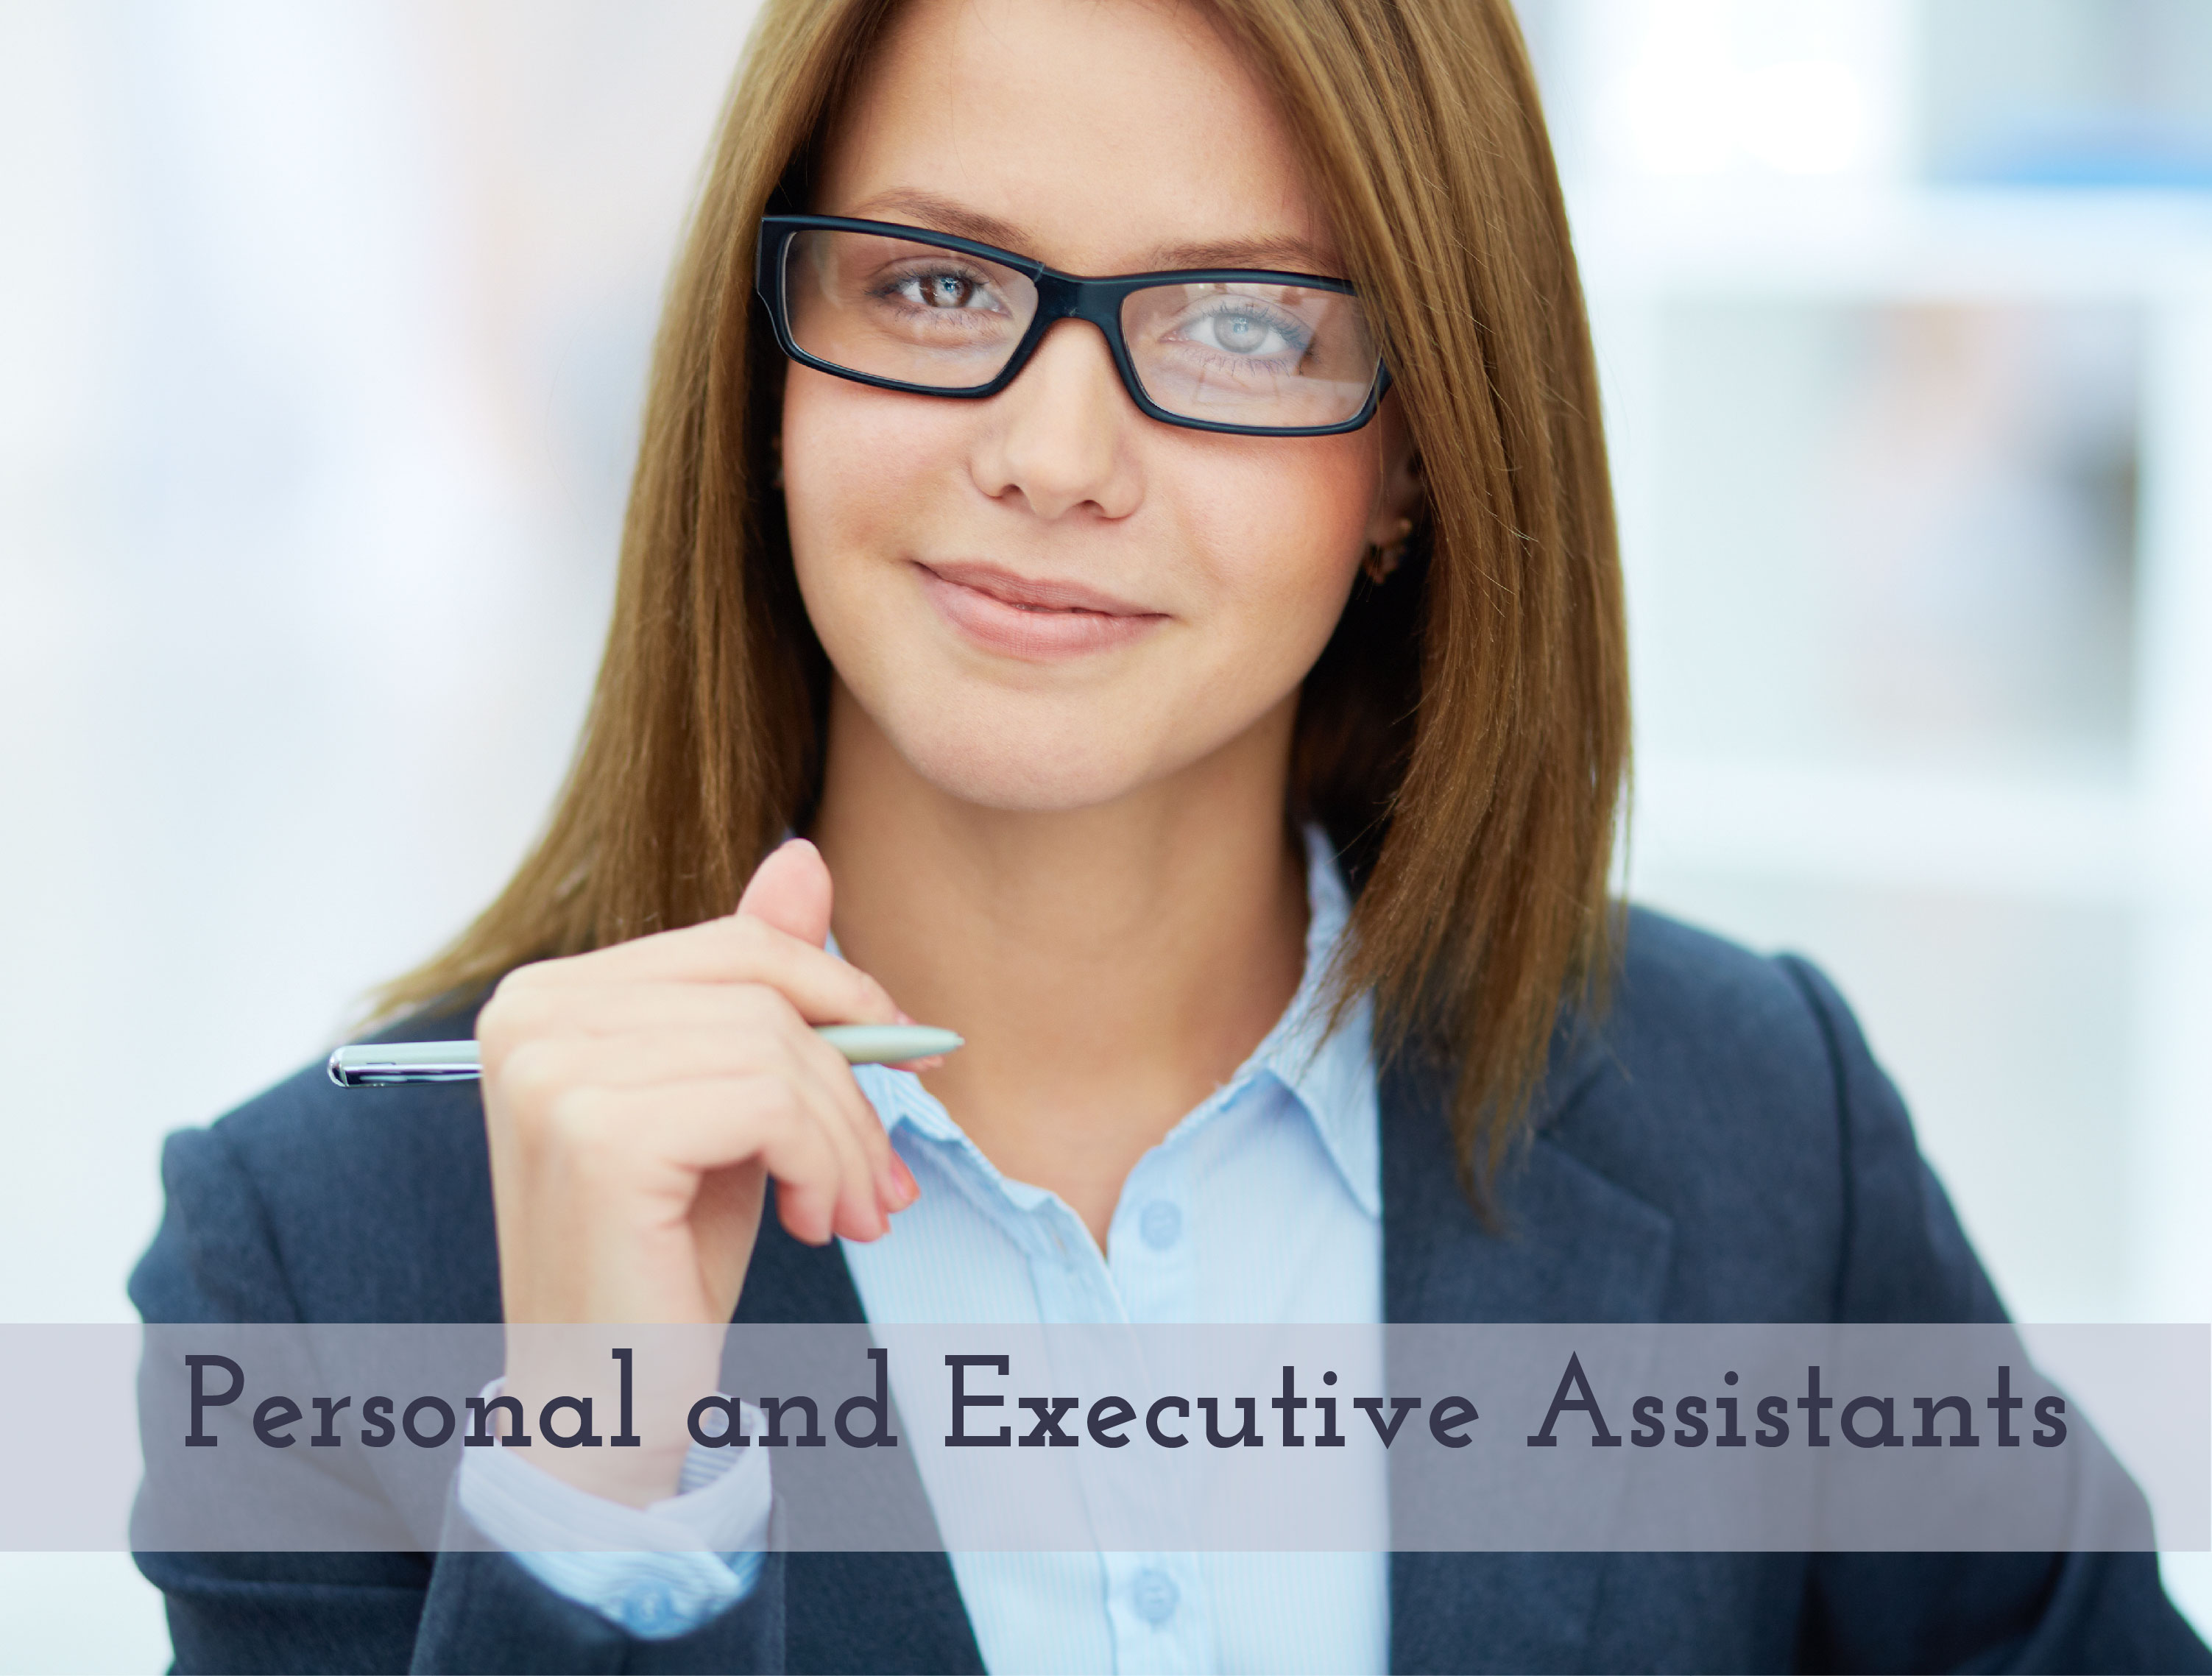 A British Personal Assistant